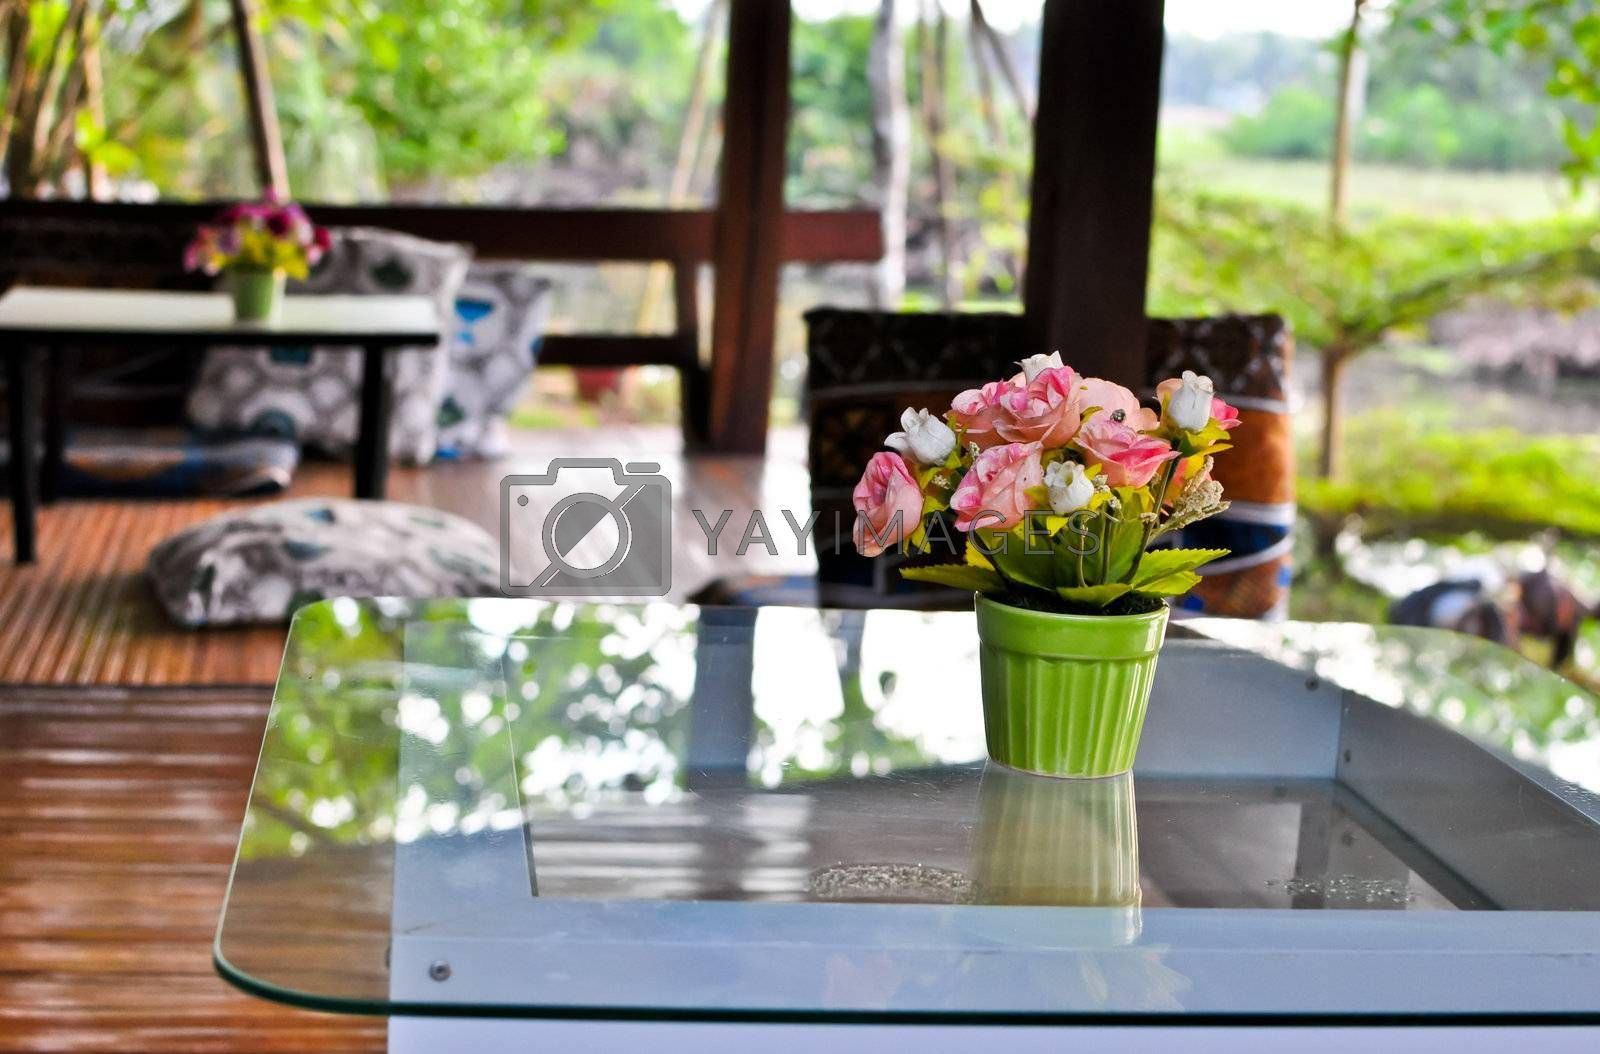 The lovely flower on the table